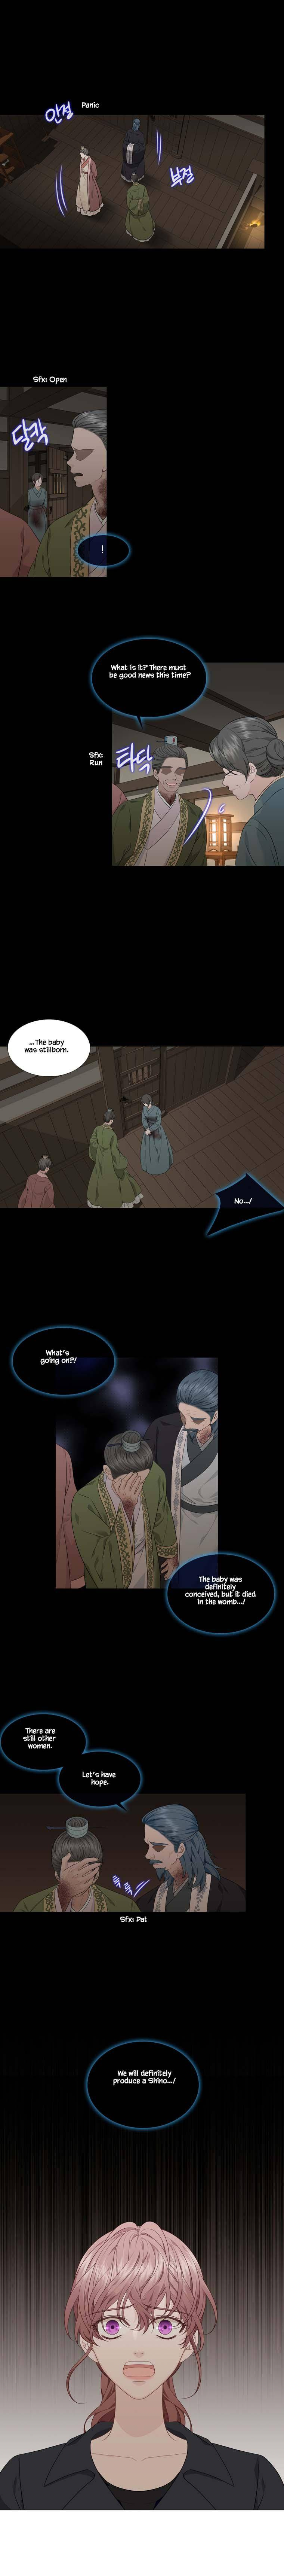 Heavenly Match - chapter 301 - #3